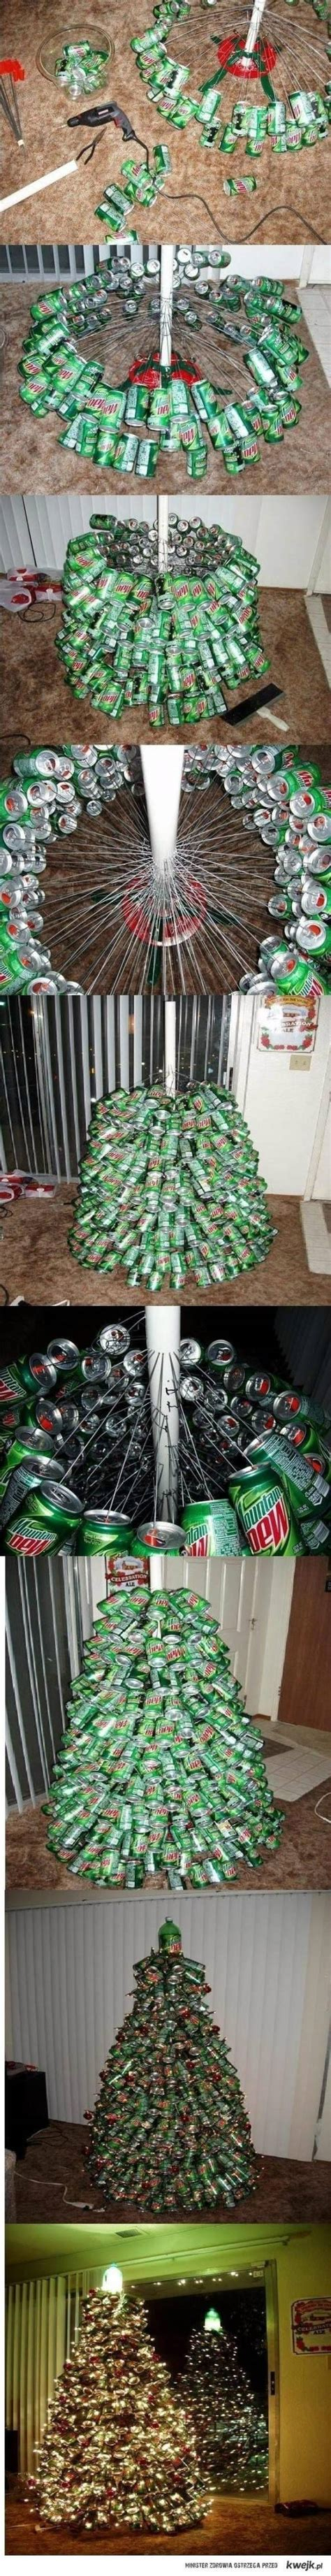 christmas tree made out of mountain dew cans interior